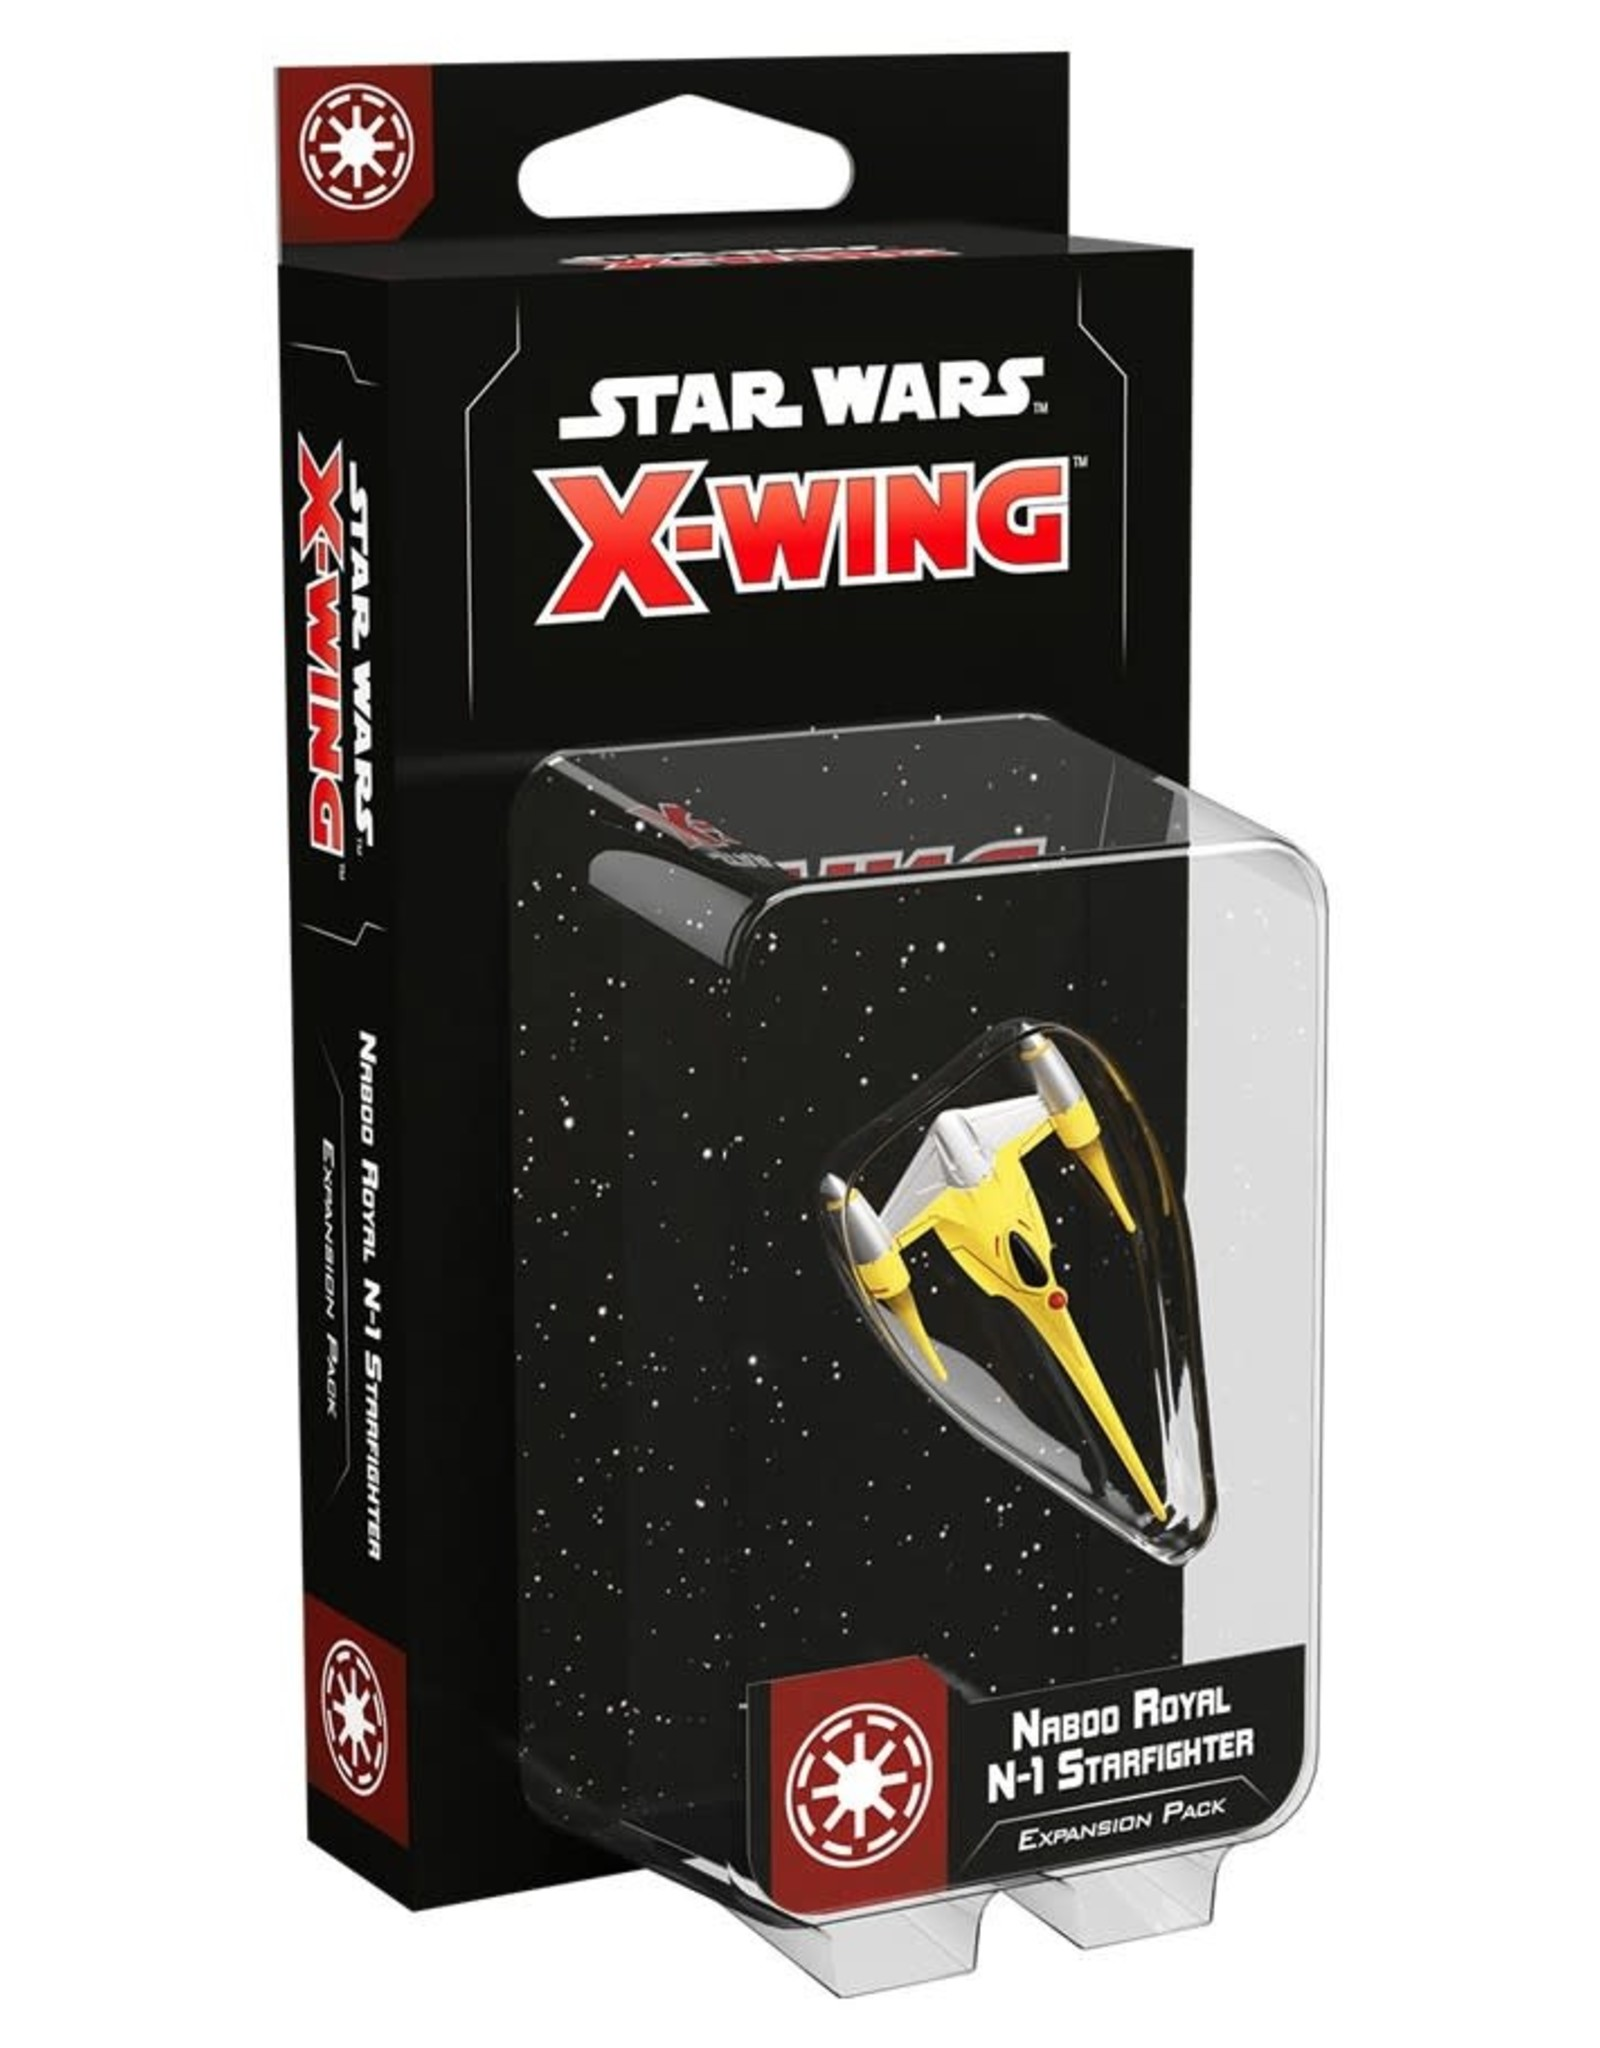 Fantasy Flight Games Star Wars X-Wing Naboo Royal N-1 Starfighter Expansion